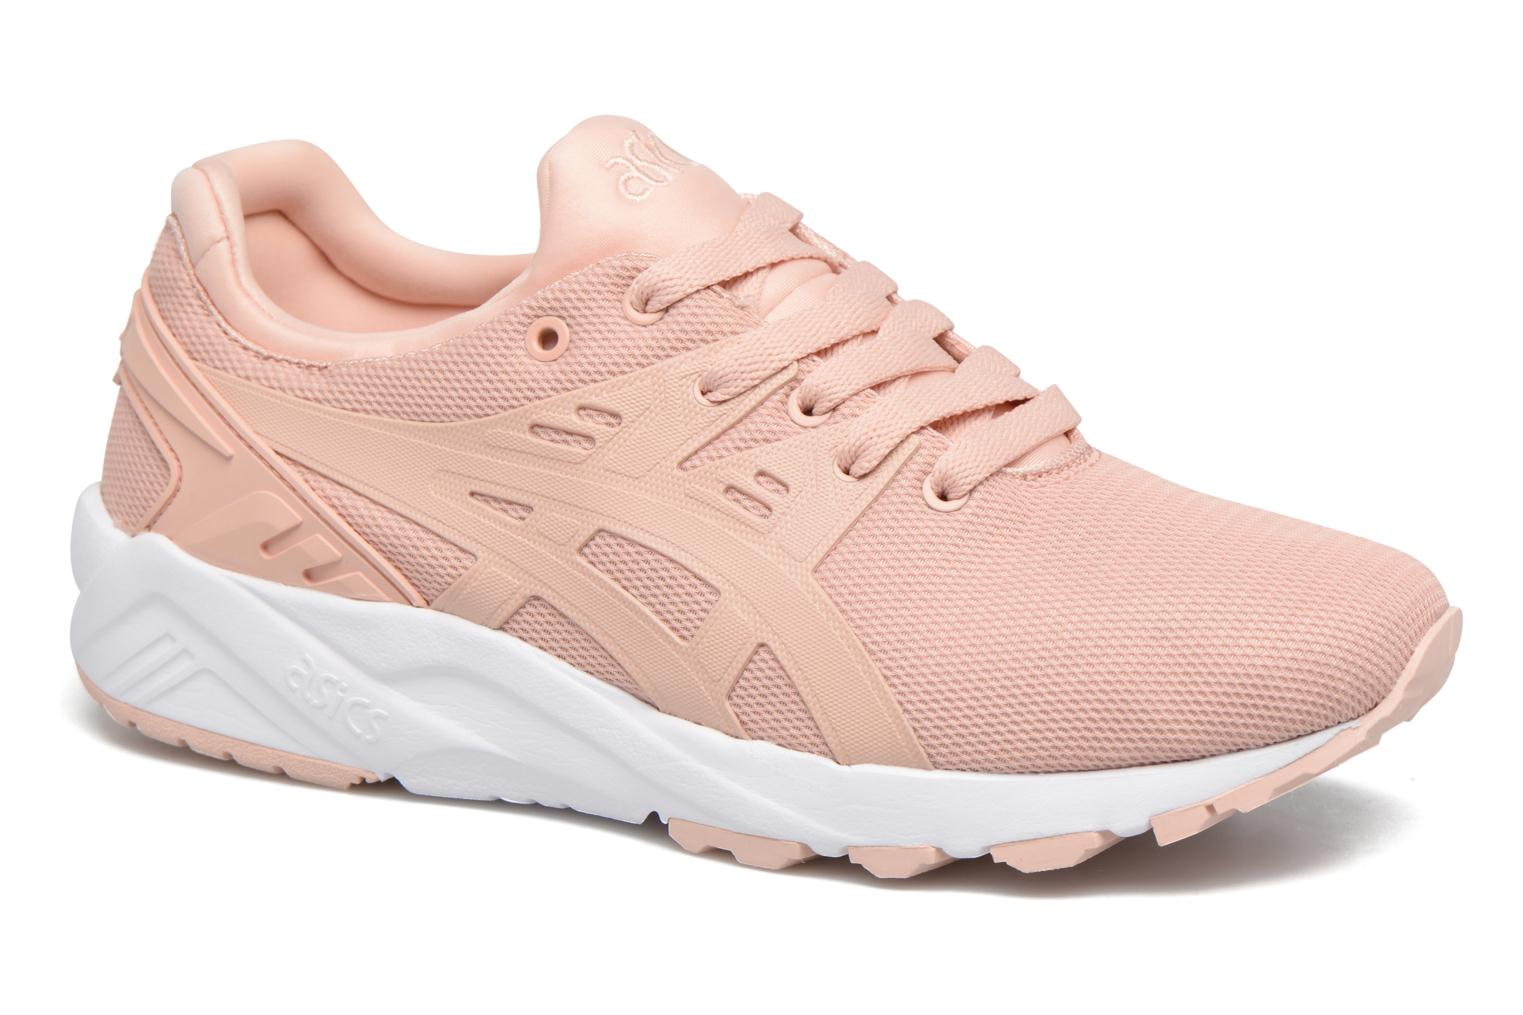 Gel-Kayano Trainer EVO GS W Evening Sand/Evening Sand